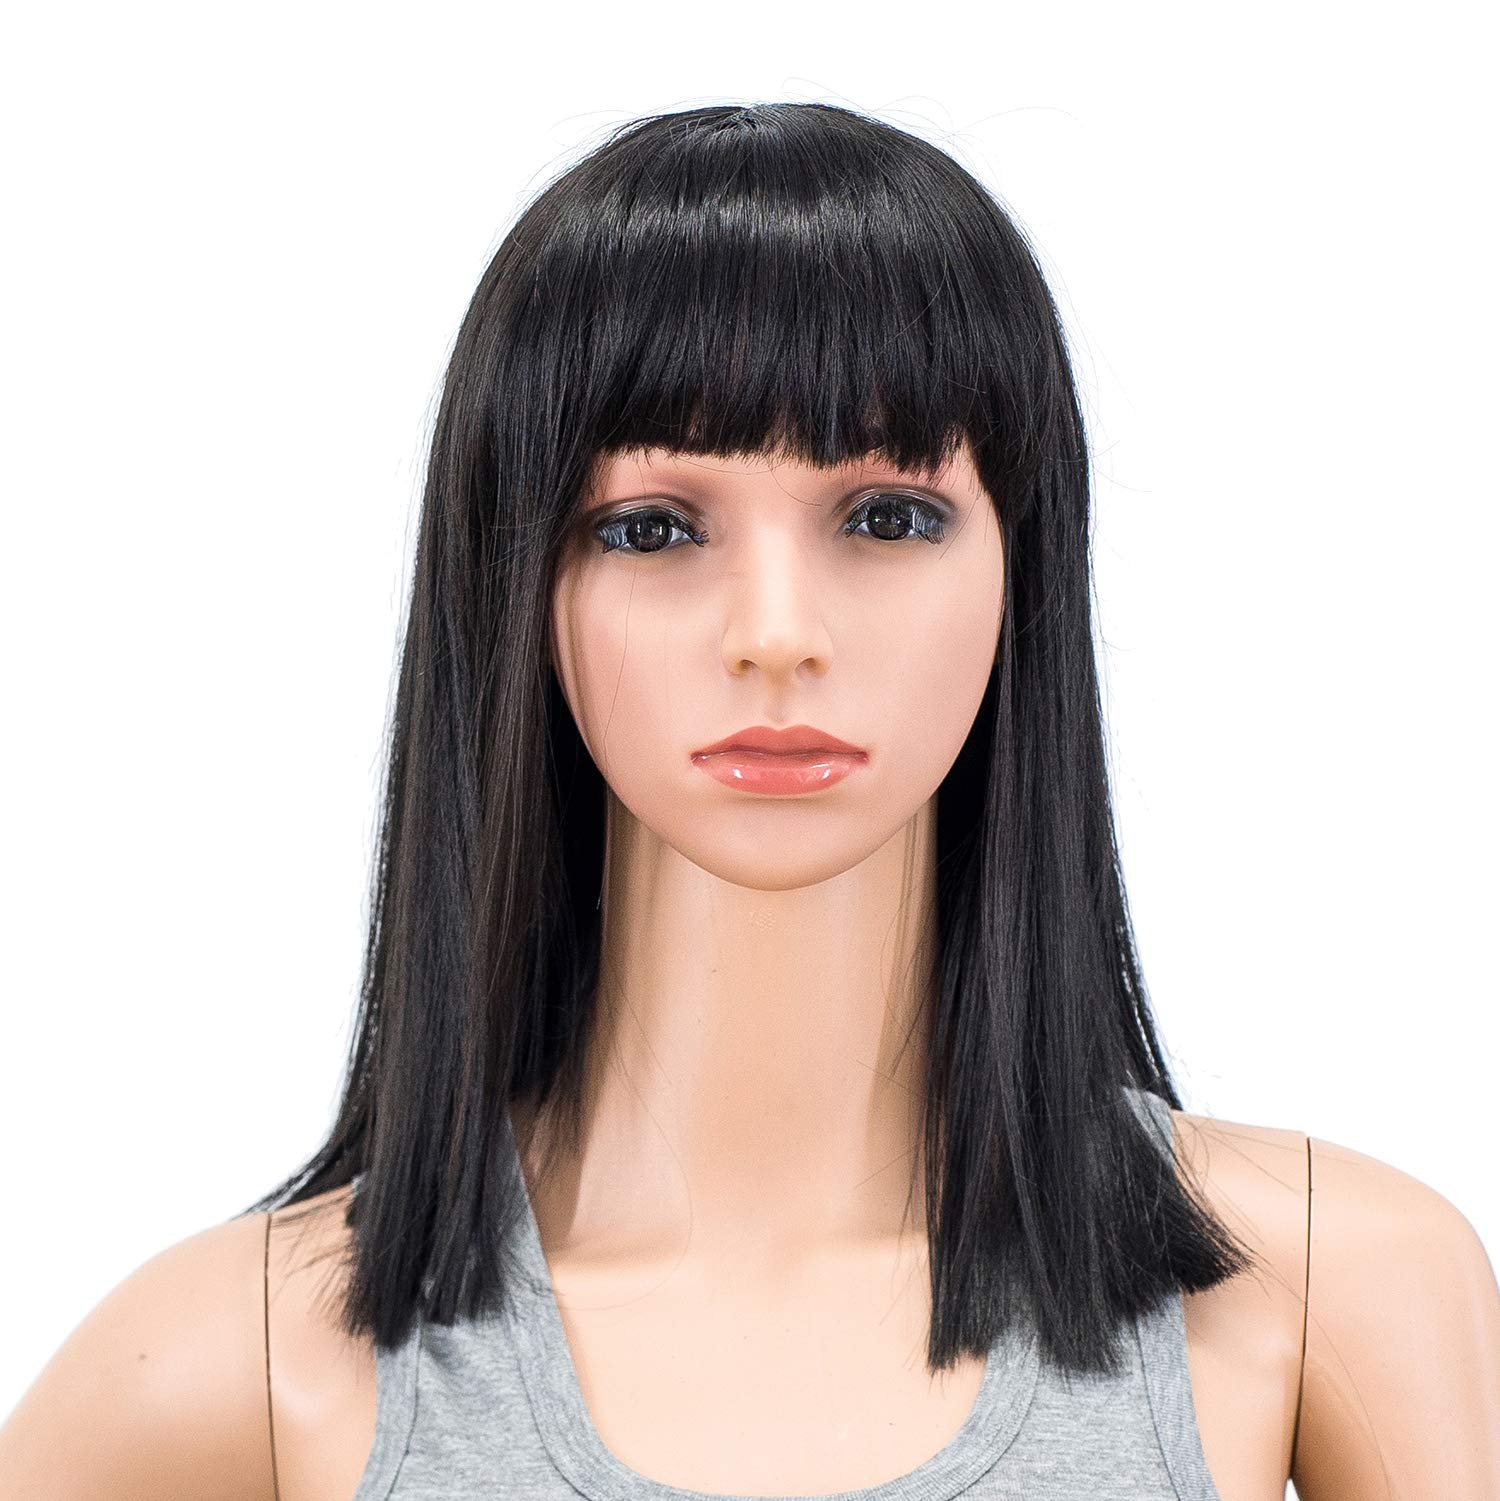 SWACC 14 Inches Short Straight Medium Shoulder Length Wig with Blunt Cut Bangs and Bottom End Synthetic Heat Resistant Hair Wigs for Women with Wig Cap (Off Black-1B) by SWACC